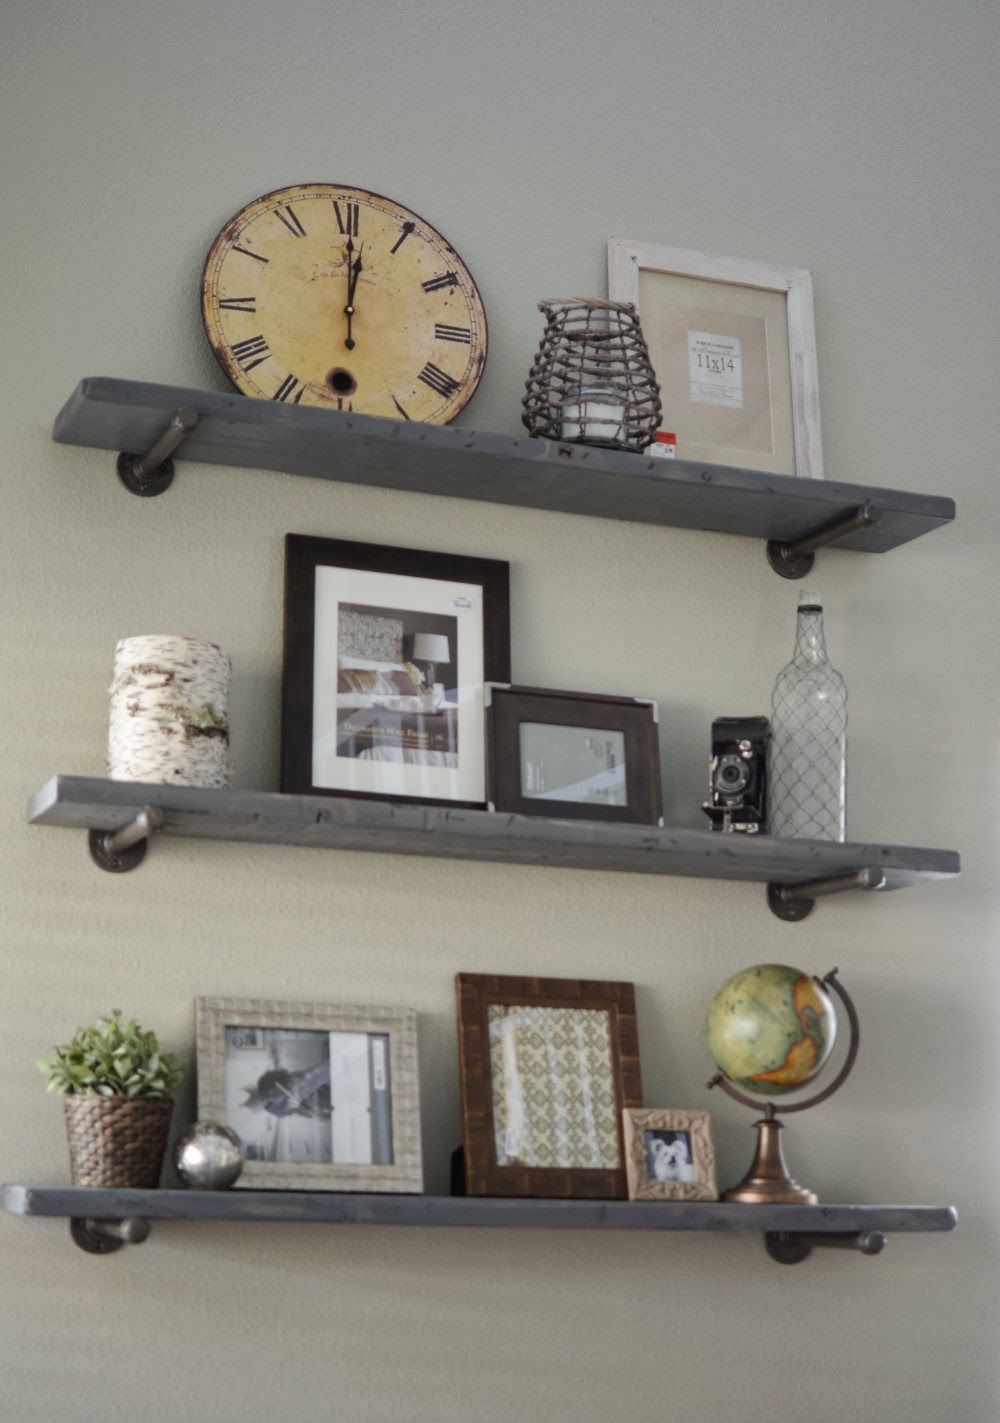 Loving what we live photo wall display on diy restoration hardware shelves - Wall metal shelf ...